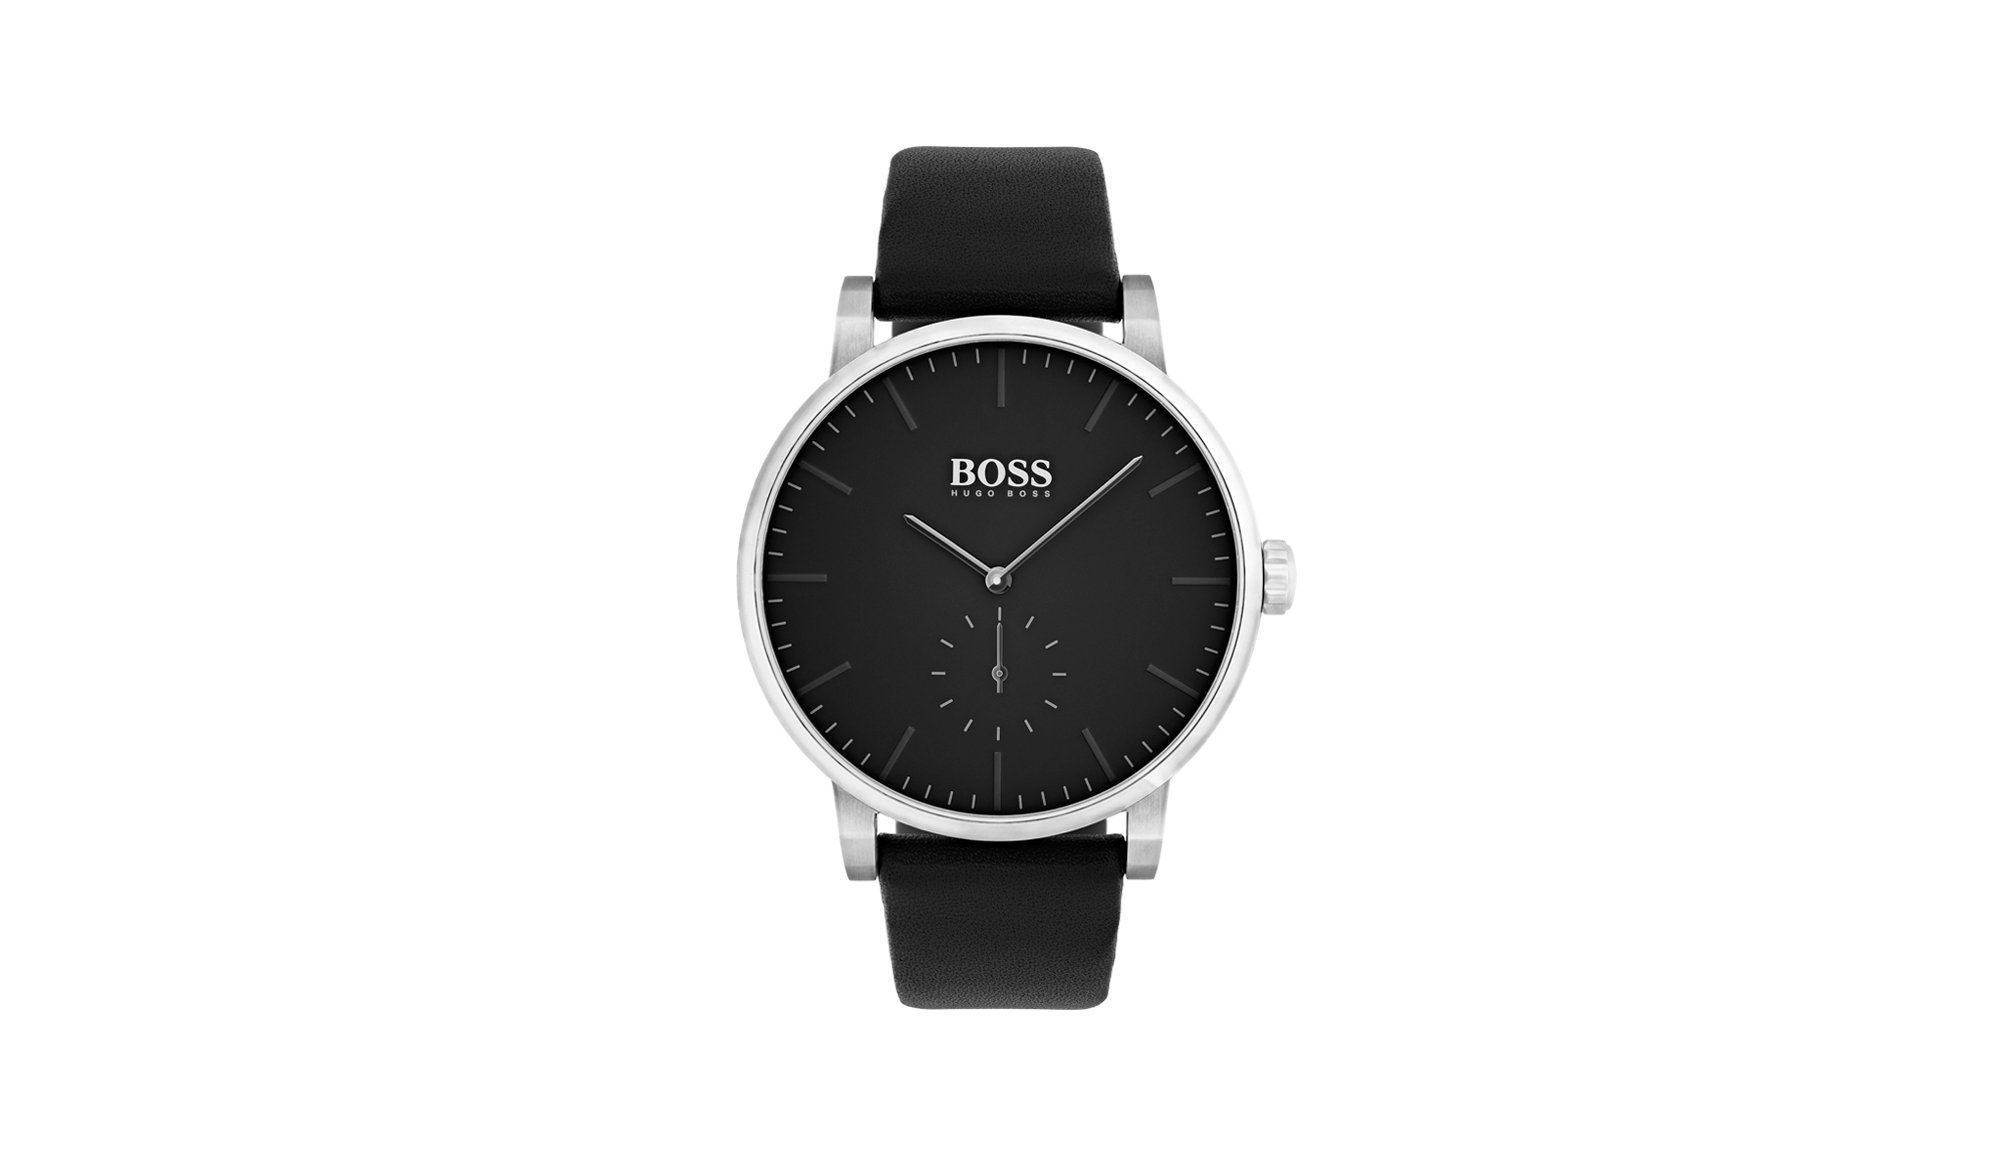 Minimalist stainless-steel watch with matt black dial and leather strap, Black